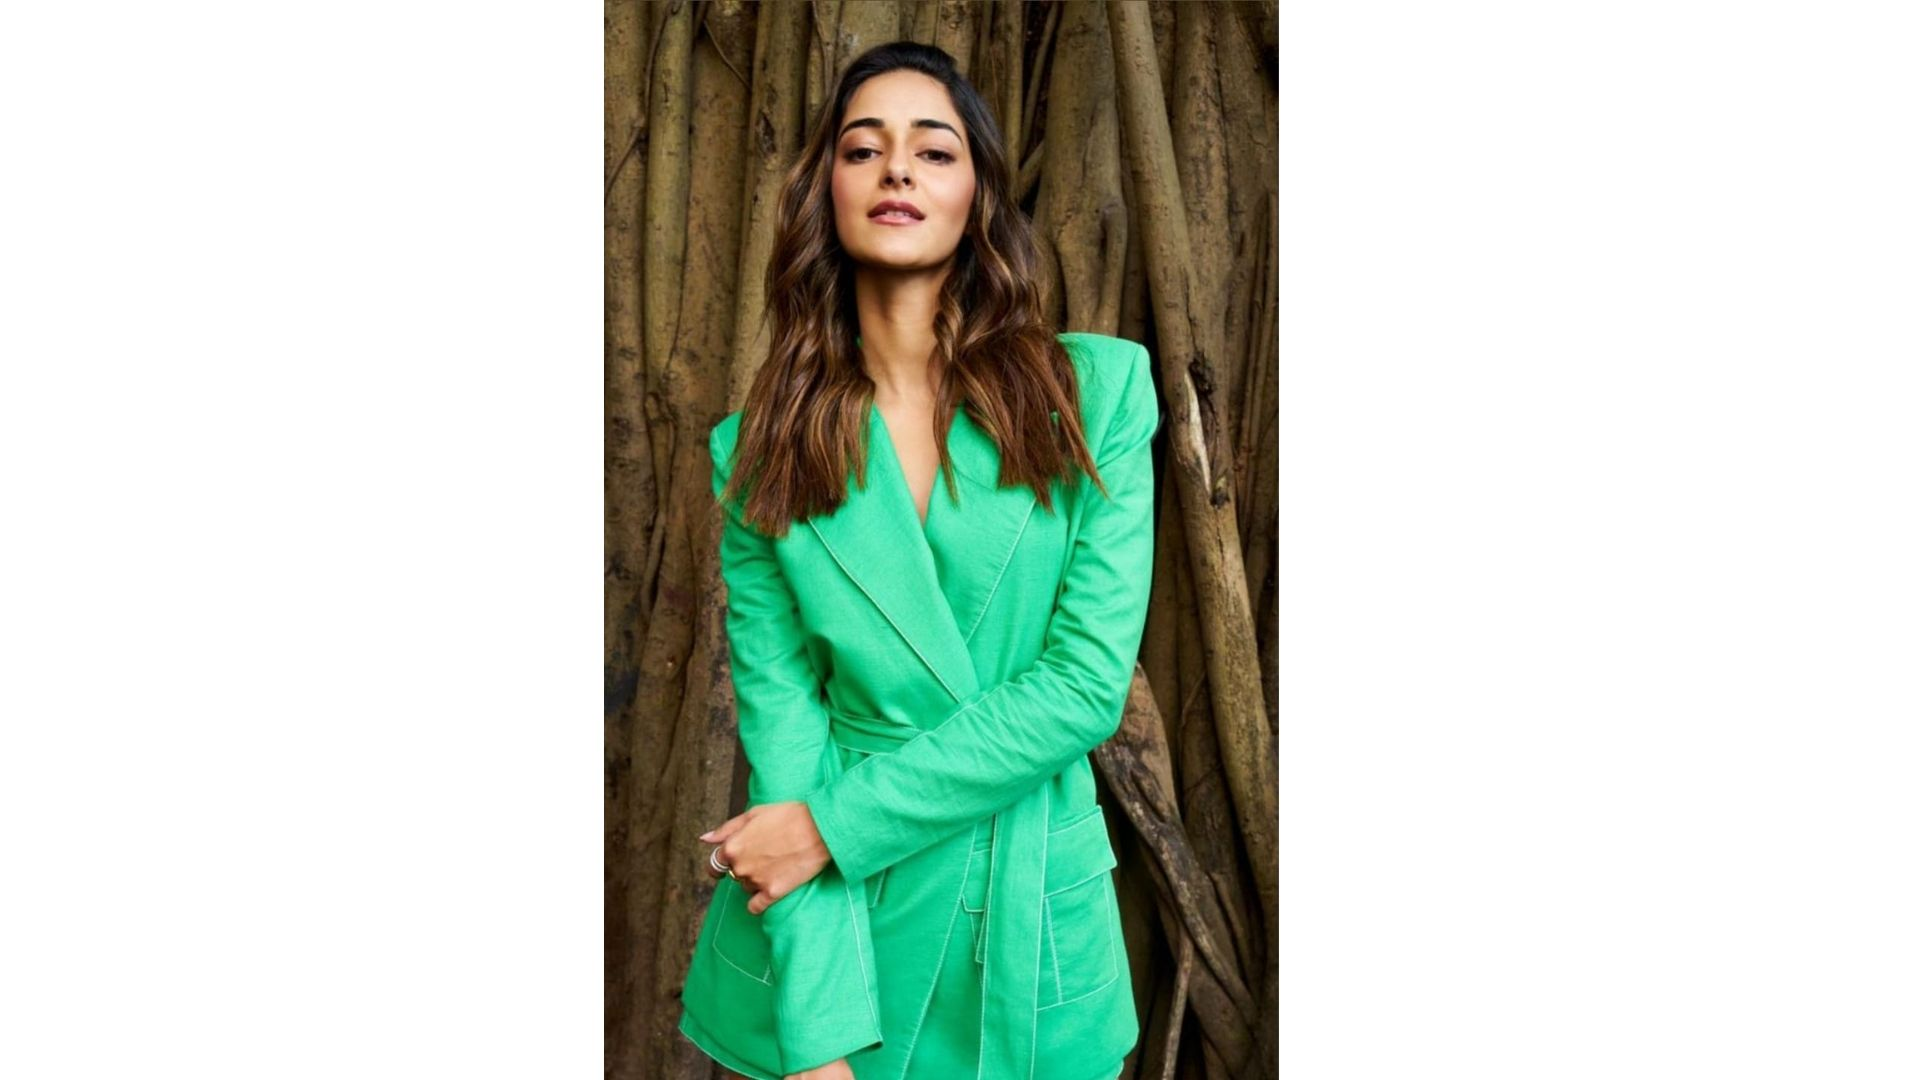 Ananya Panday Rocks The Neon-Green Look; These Pics Will Take Away Your Monday Blues